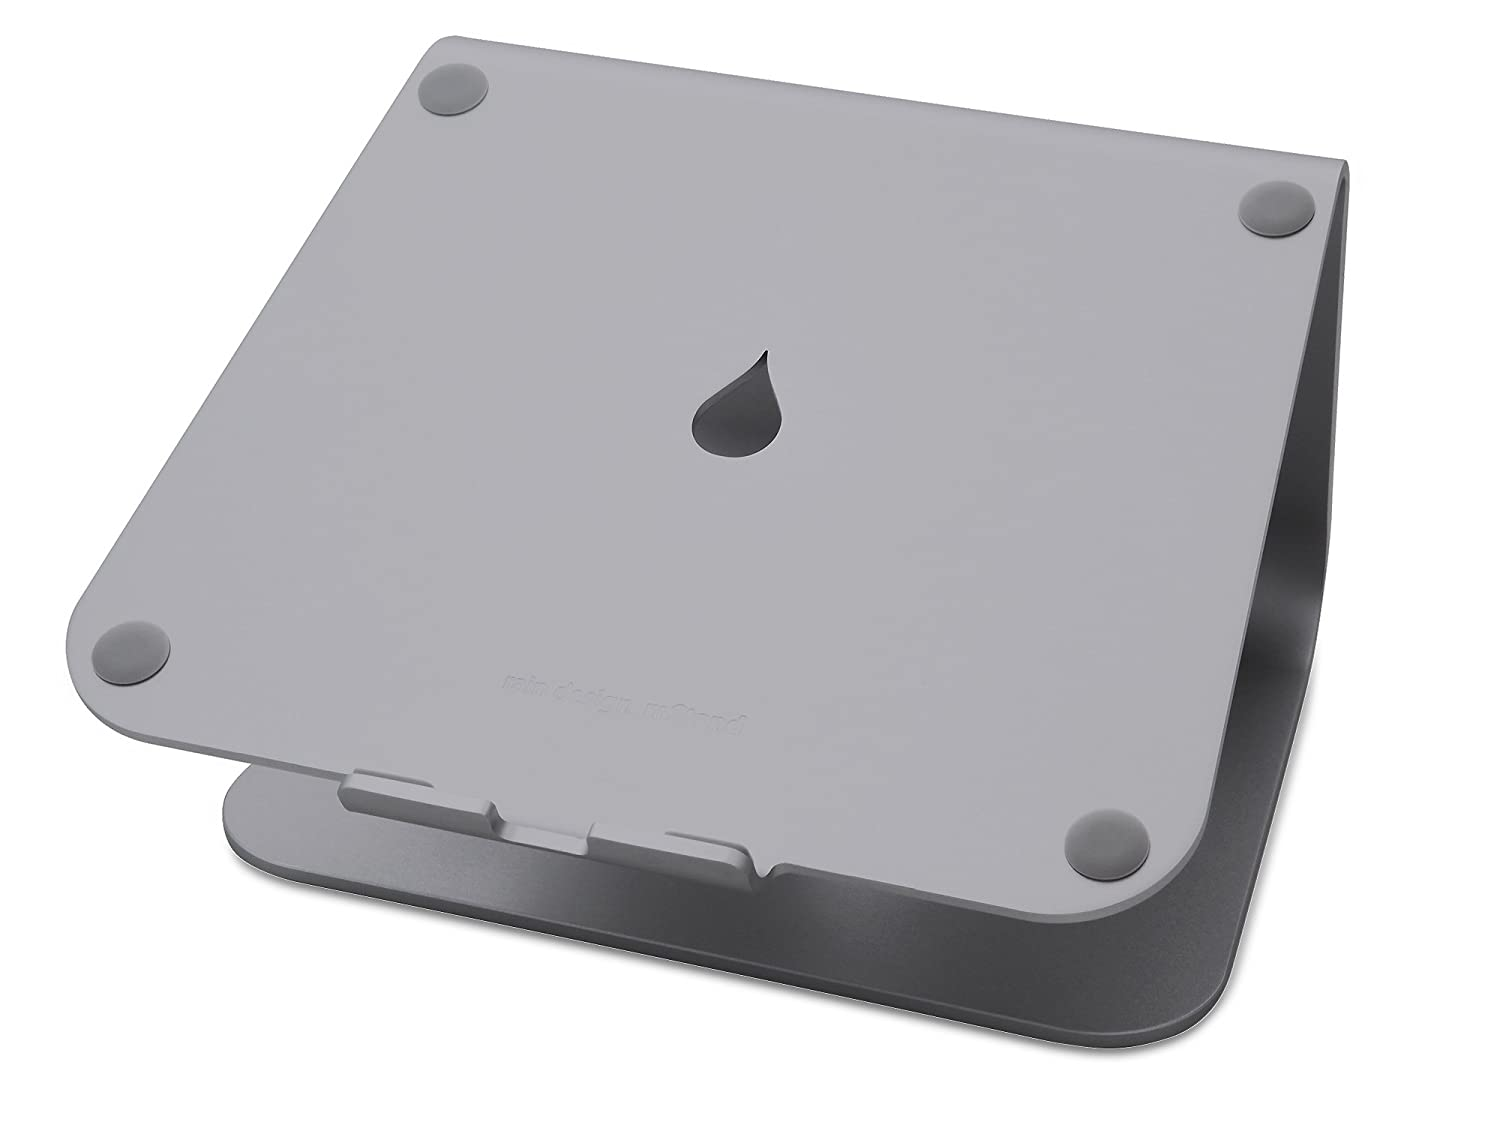 Soporte Para Macbook, Color Space Gray, Marca Rain Design